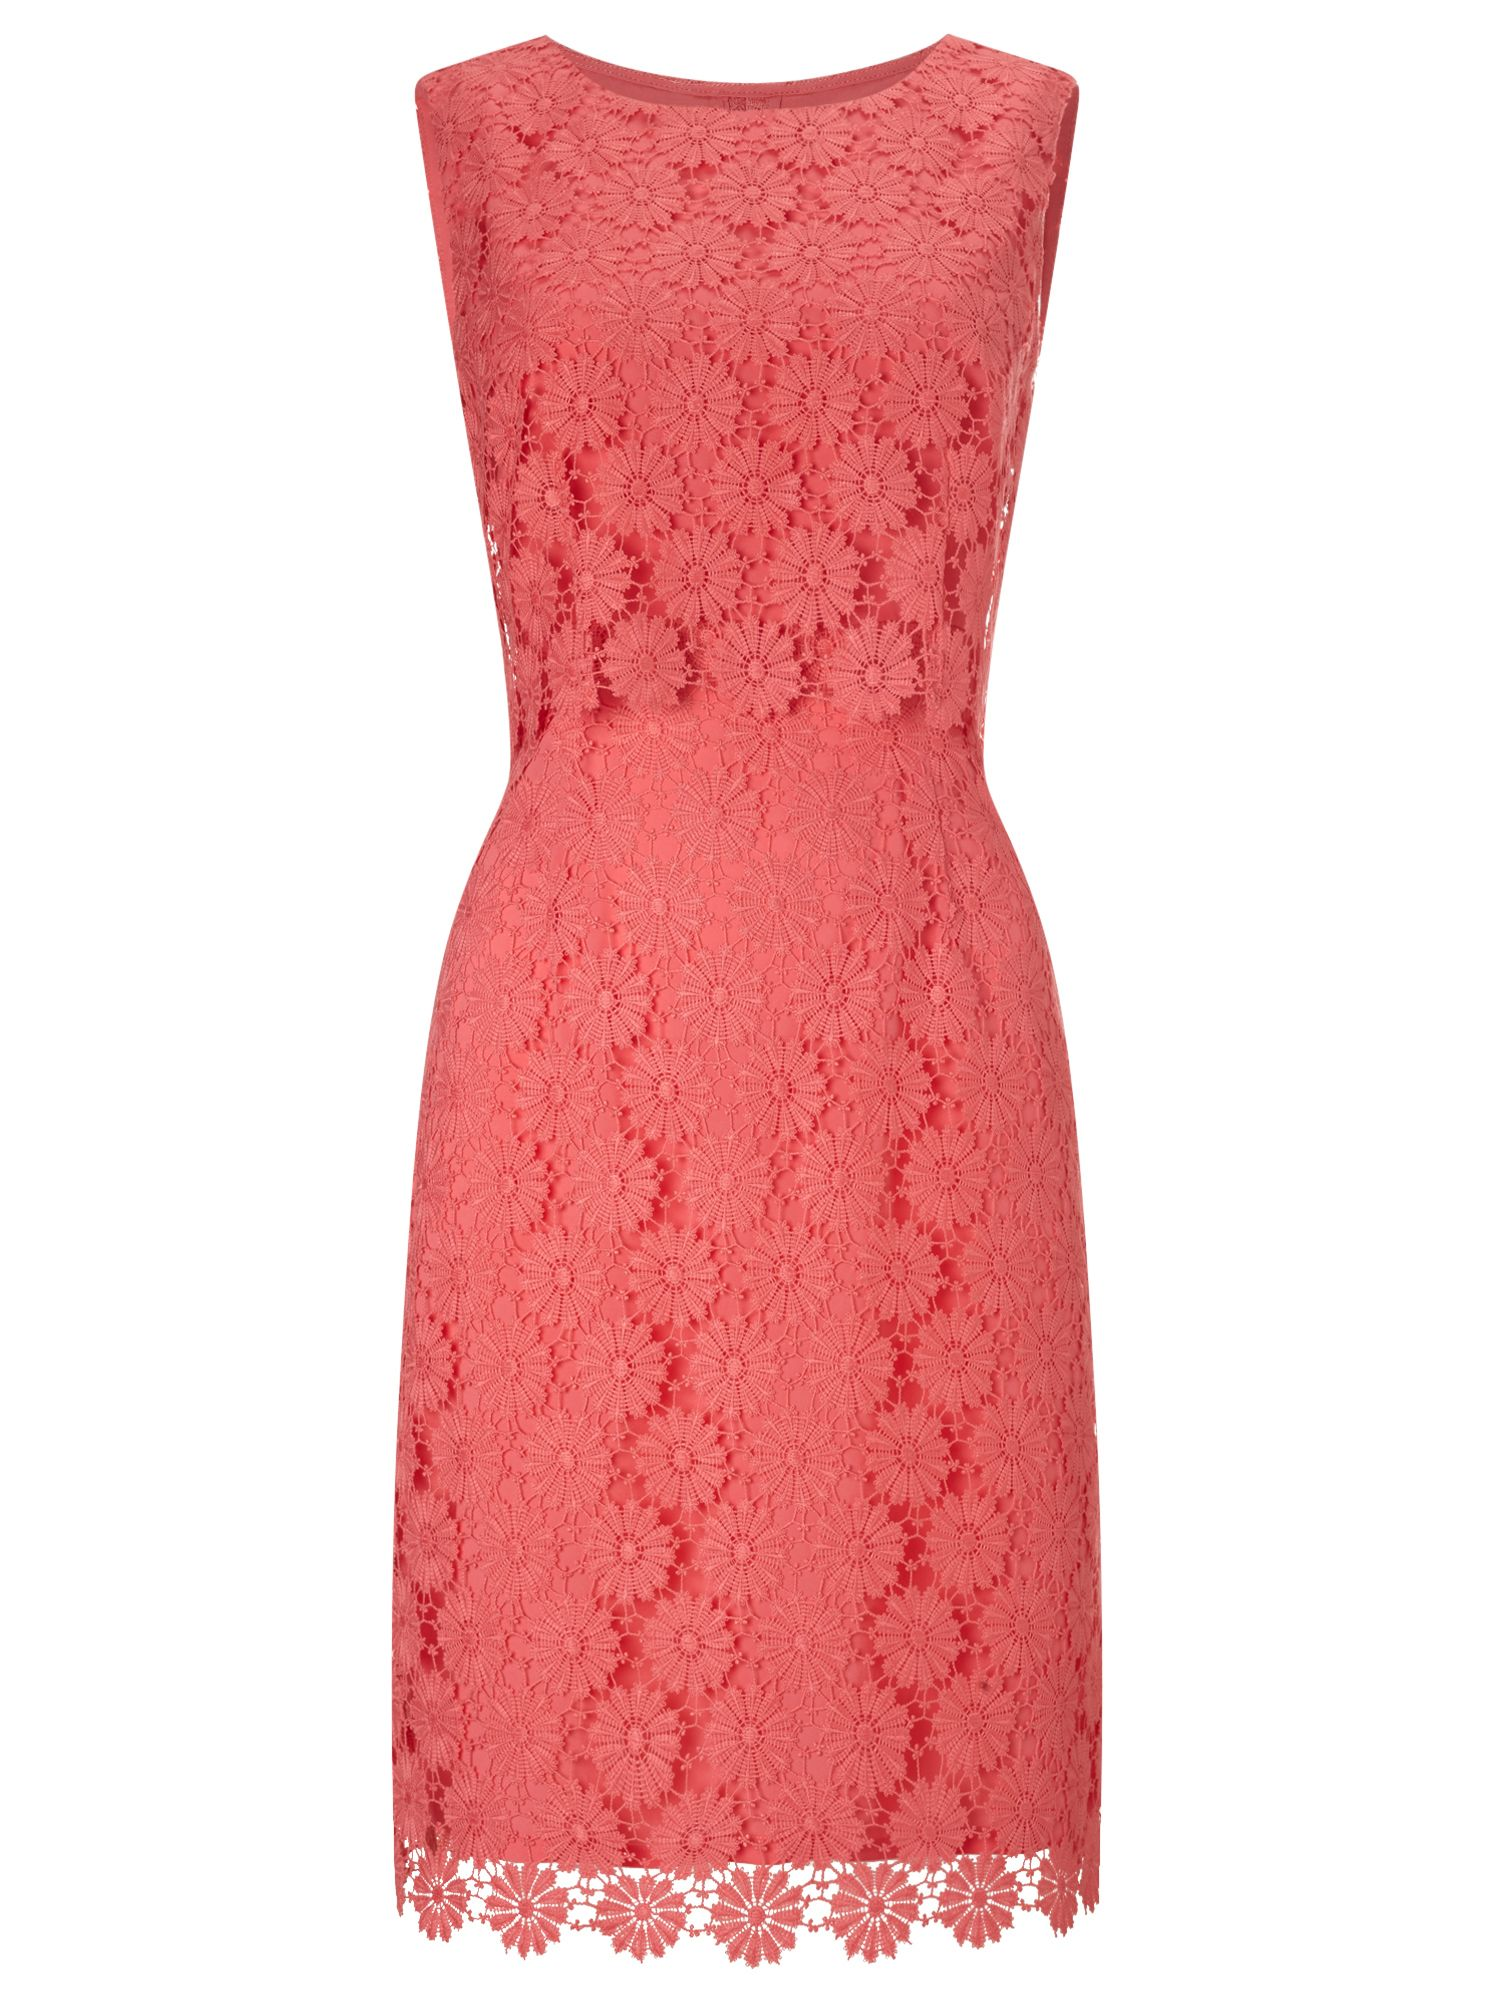 Precis Petite Jeff Banks Lace Shift Dress, Pink